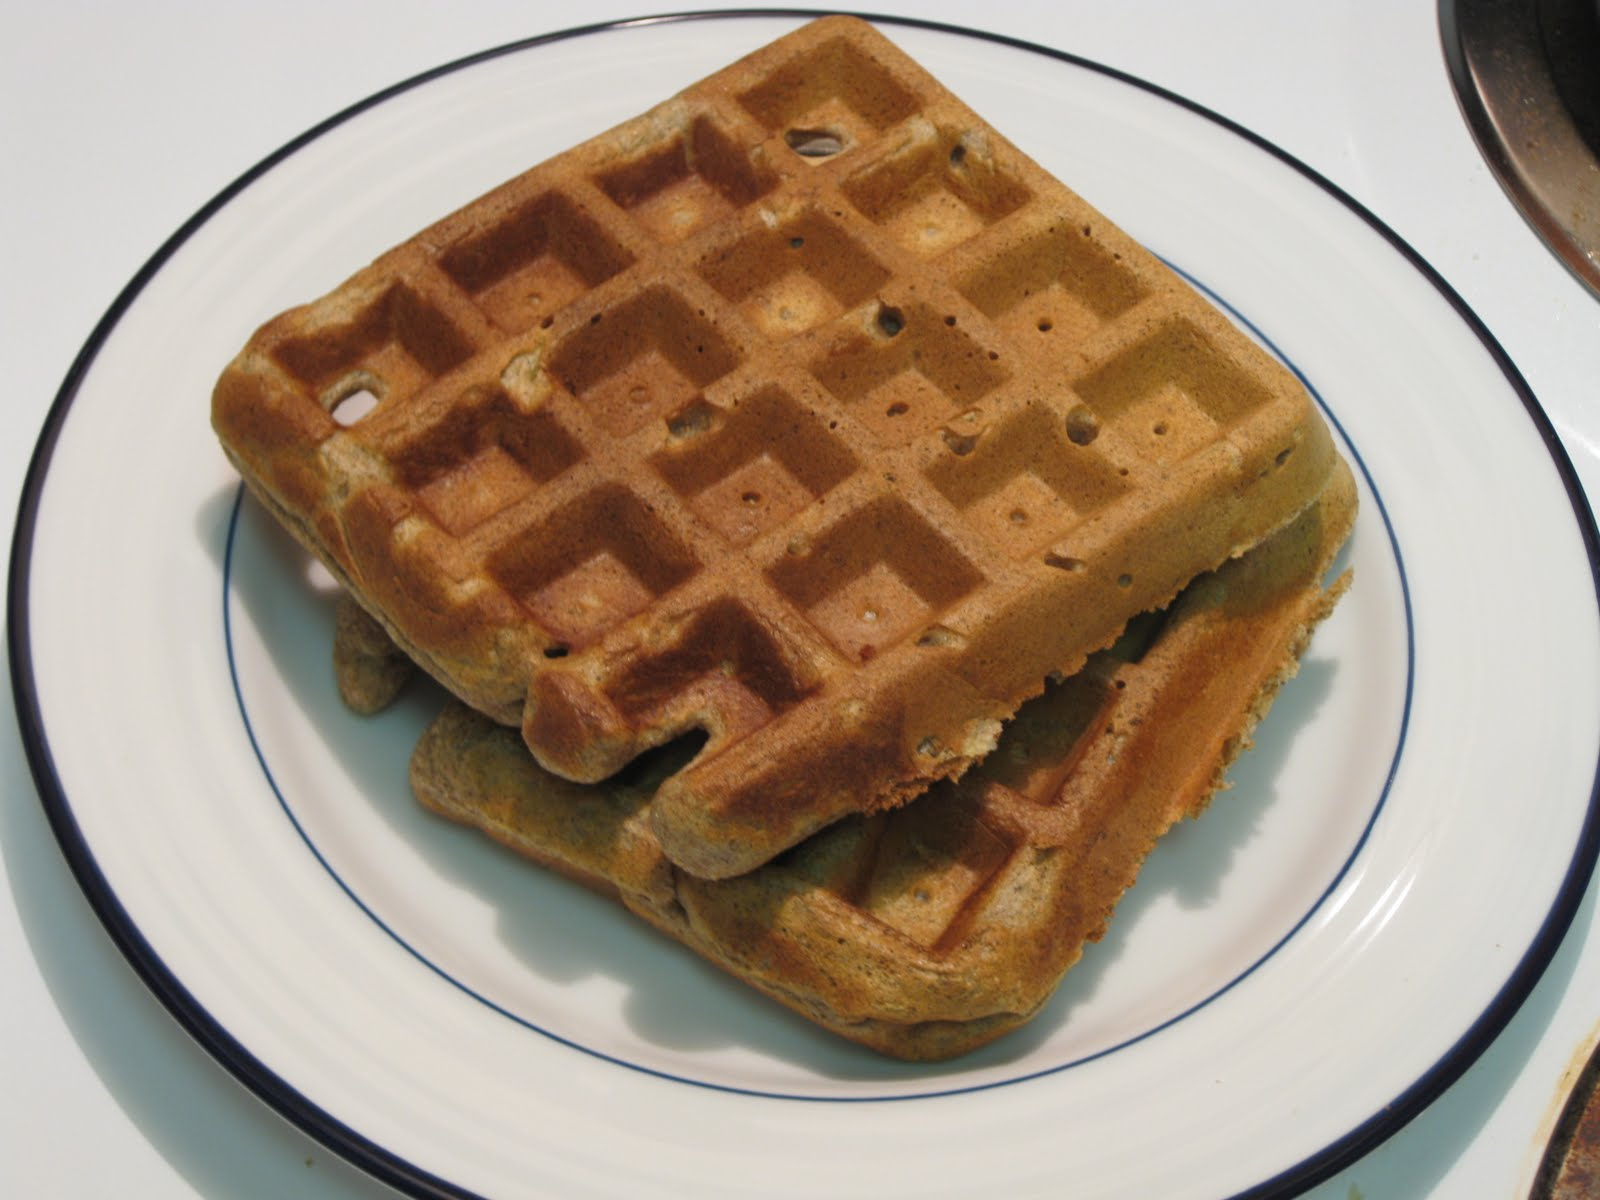 In Search of the Finer Things: Apple Cinnamon Whole Grain Waffles